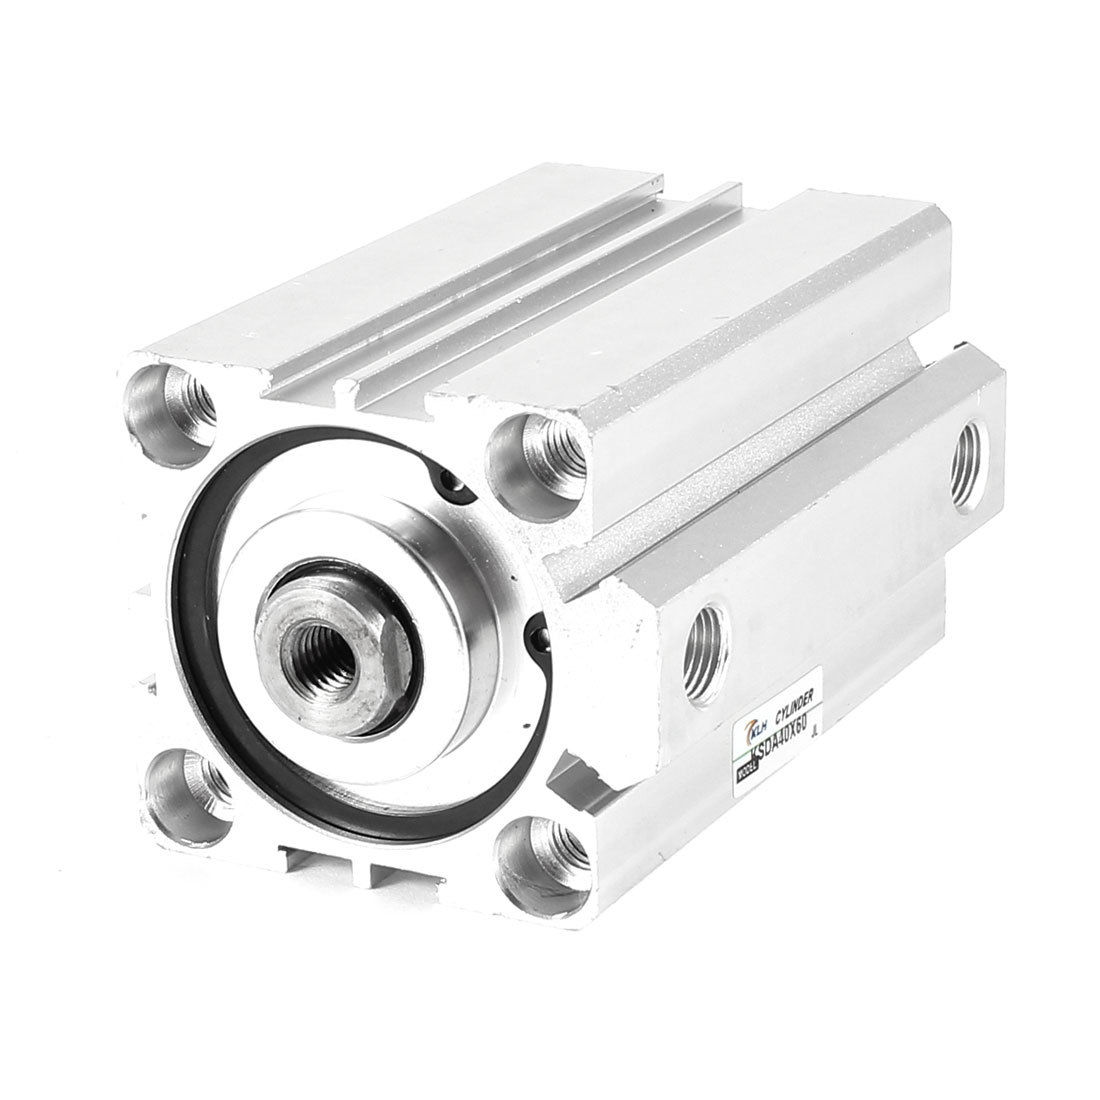 1 Pcs 63mm Bore 90mm Stroke Stainless steel Pneumatic Air Cylinder SDA63-90 2w 040 10 g3 8 ac220v dc12v dc24v copper water electromagnetic valve solenoid valves normal close